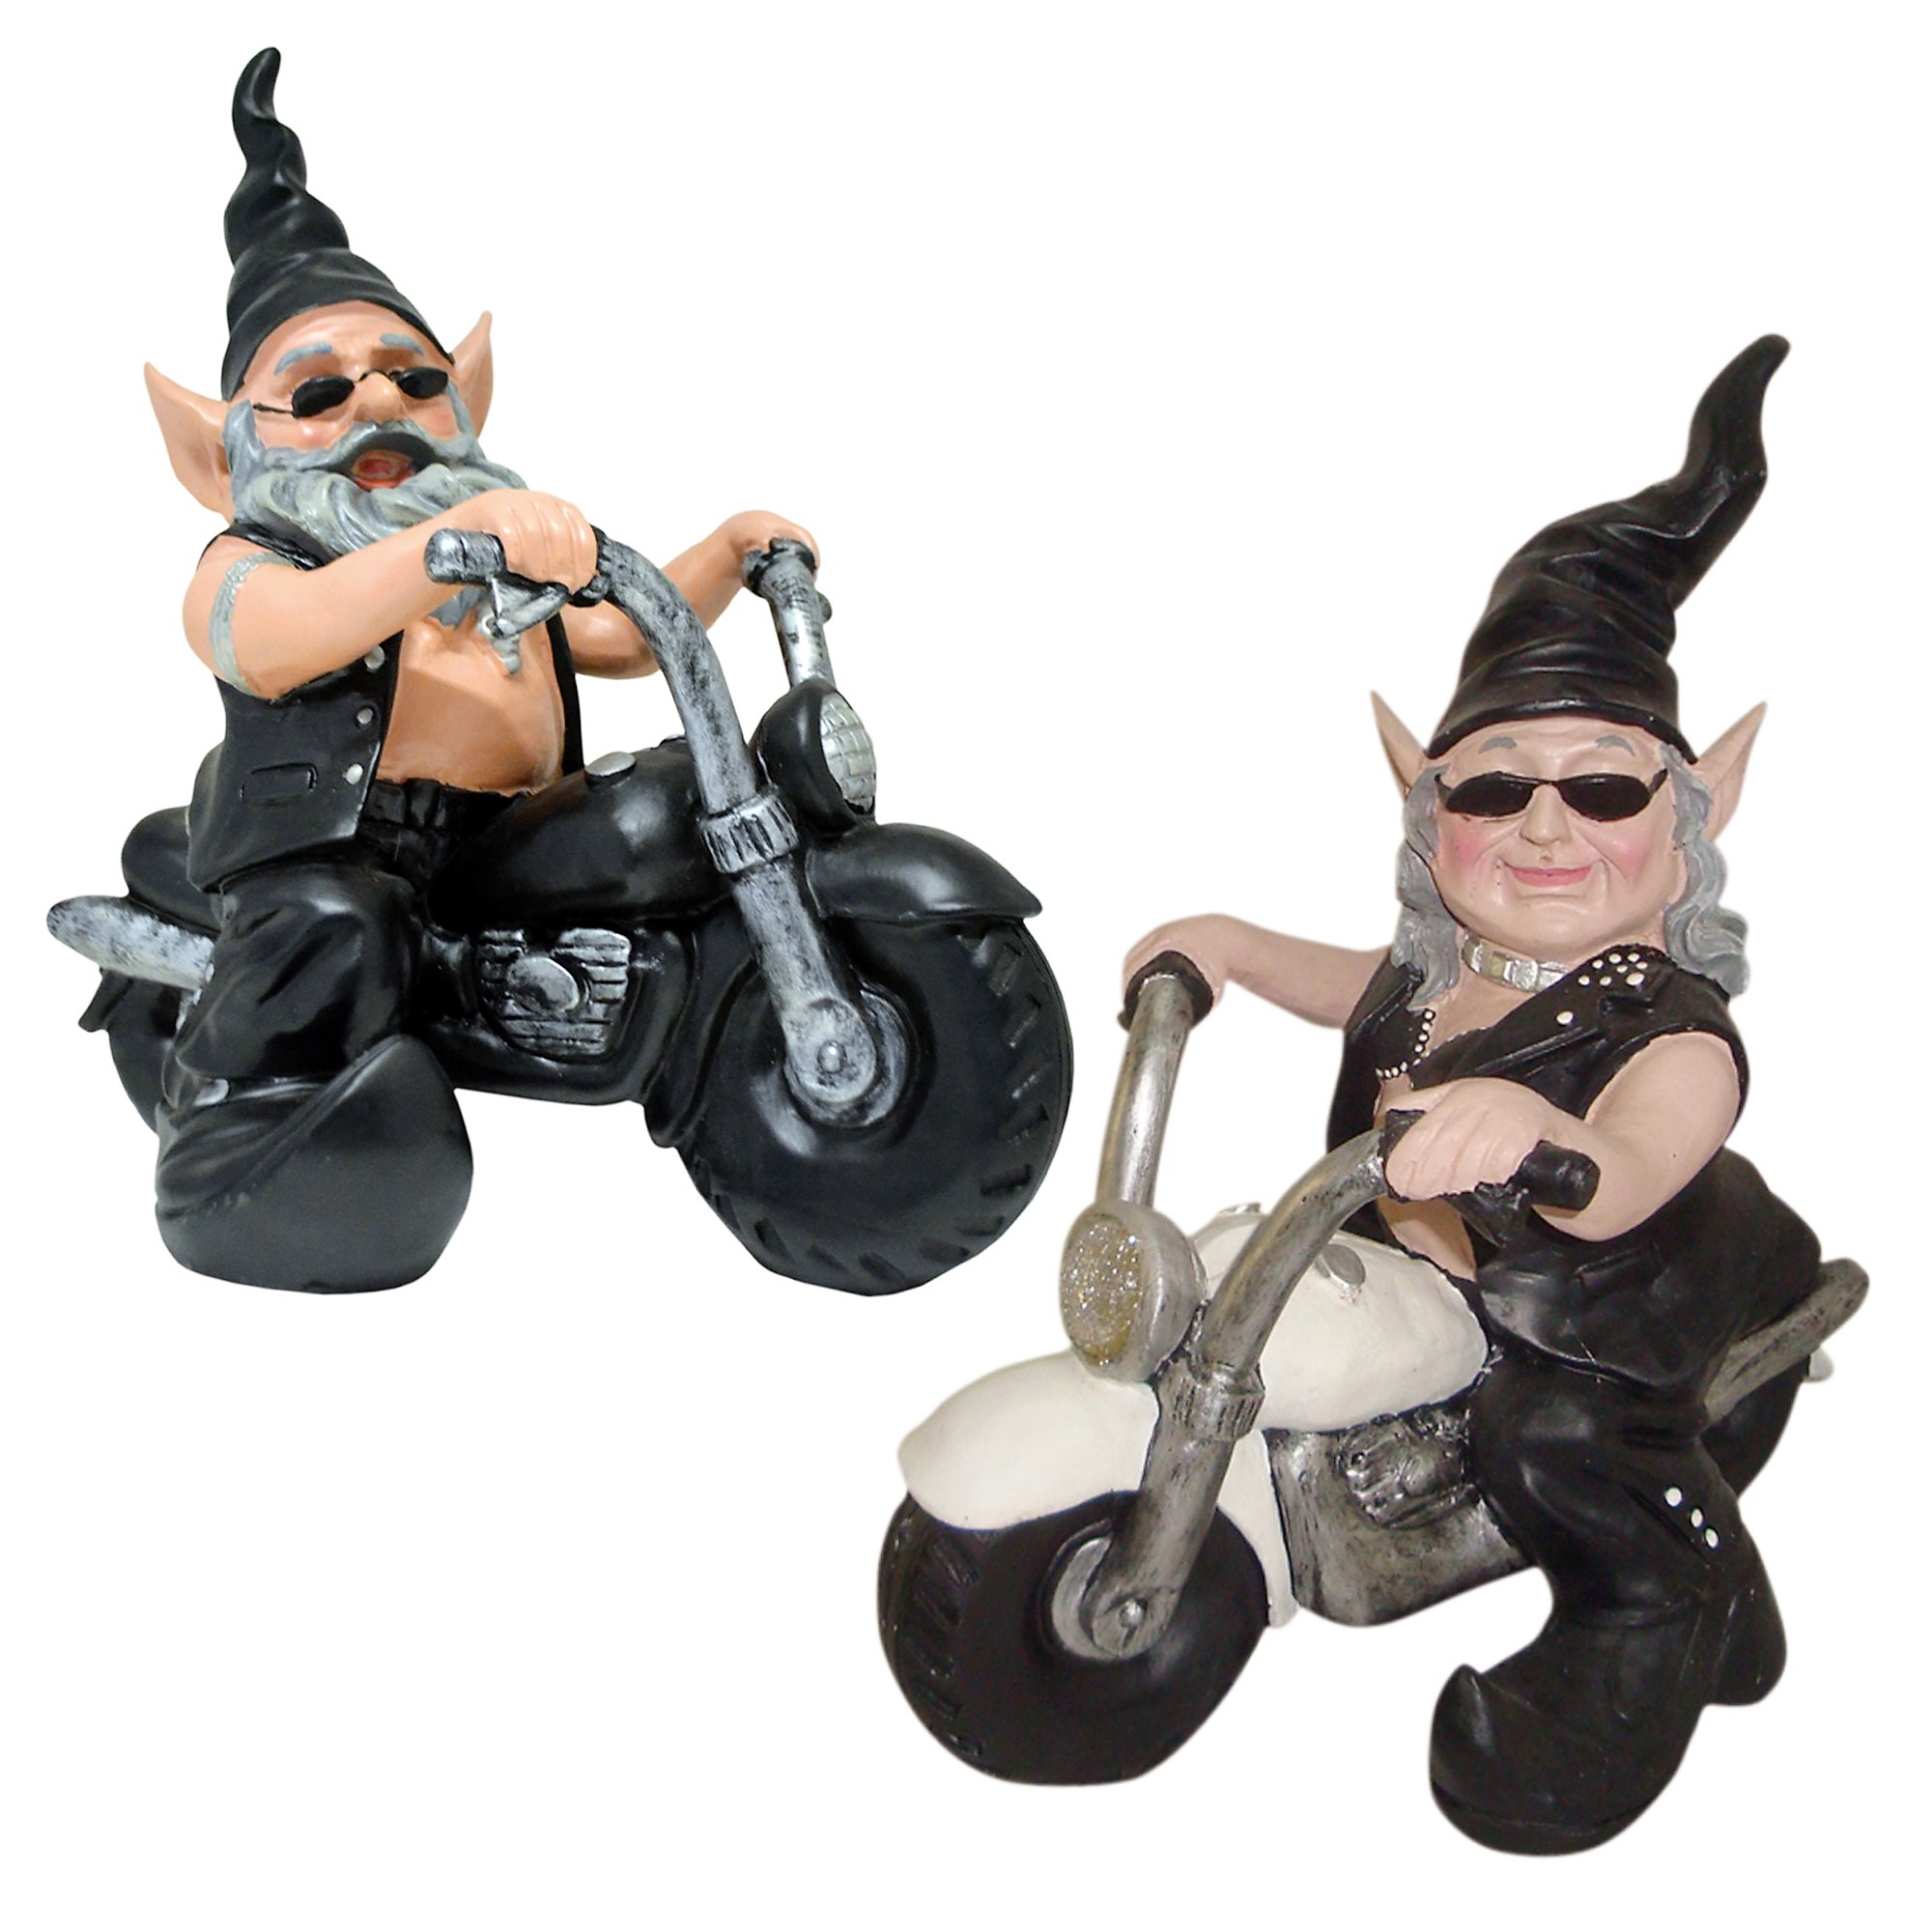 """Nowaday Gnomes """"Biker Dude & Babe"""" the Biker Gnomes in Leather Motorcycle Gear Riding Black and... by GSI Homestyles"""